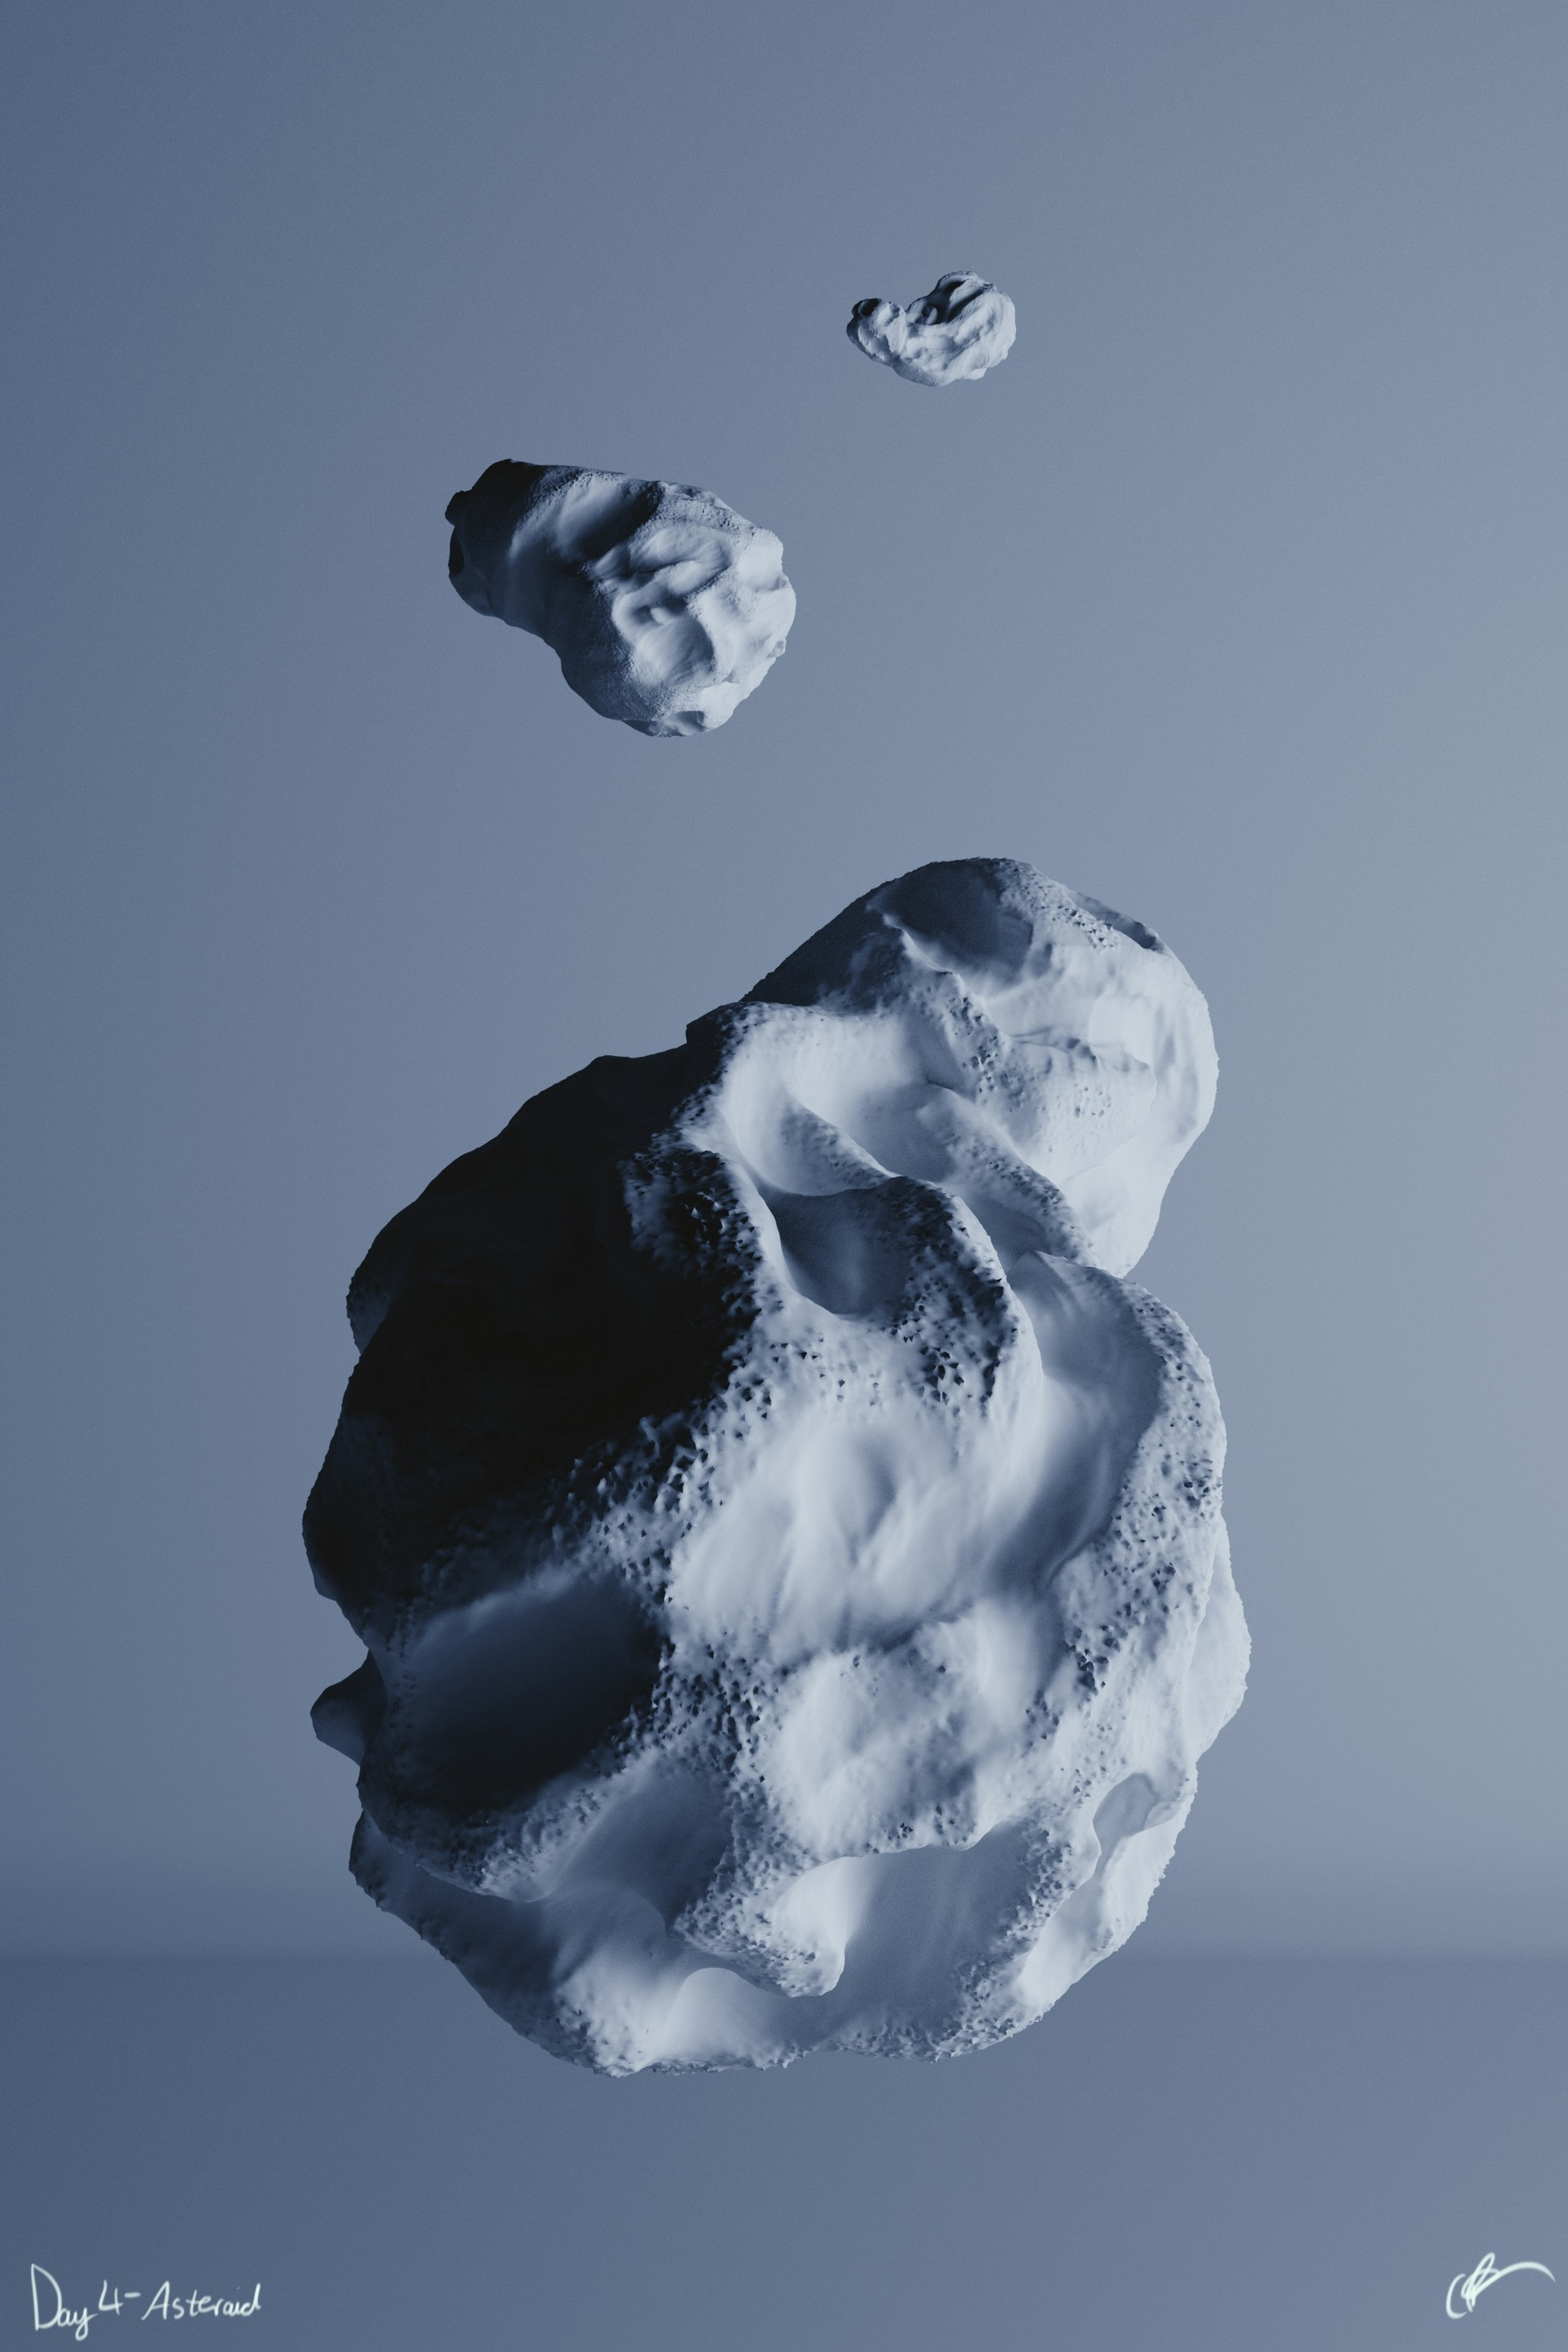 #SculptJanuary Day 4 - Asteroid